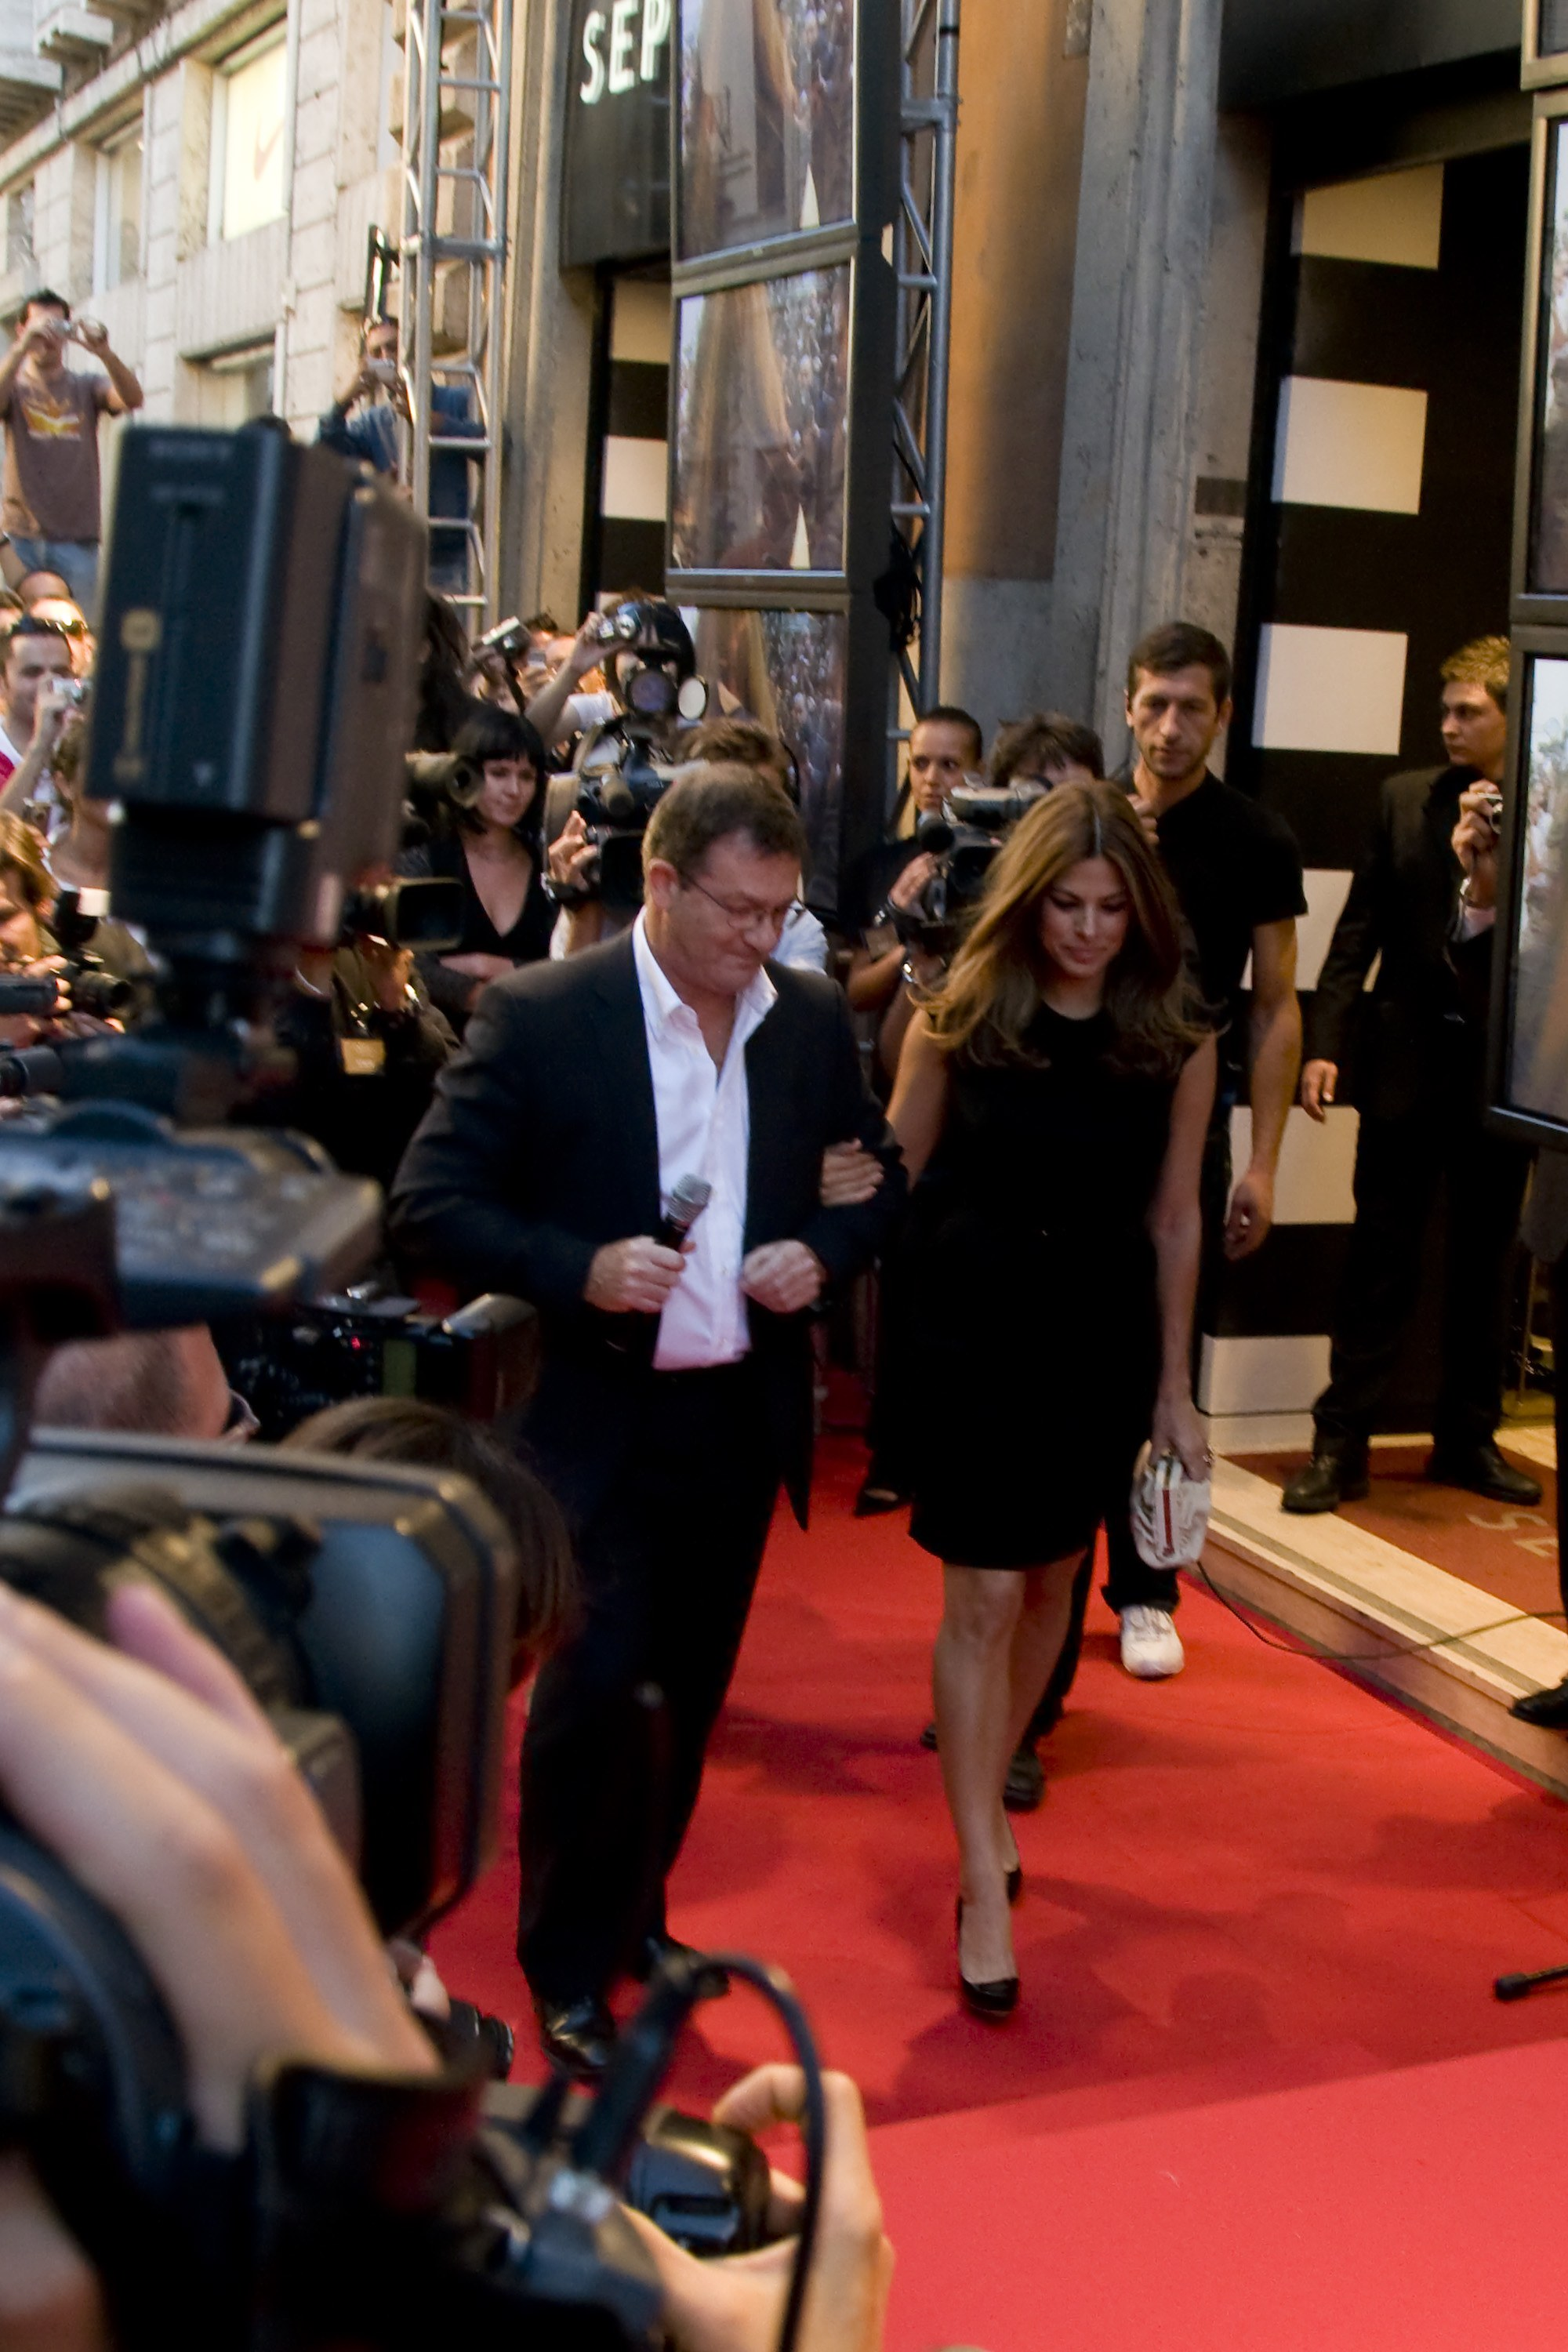 00432_Eva_Mendes_in_Rome_to_promote_the_new_fragrance_of_Calvin_Klein_CU_ISA_0001_122_959lo.jpg